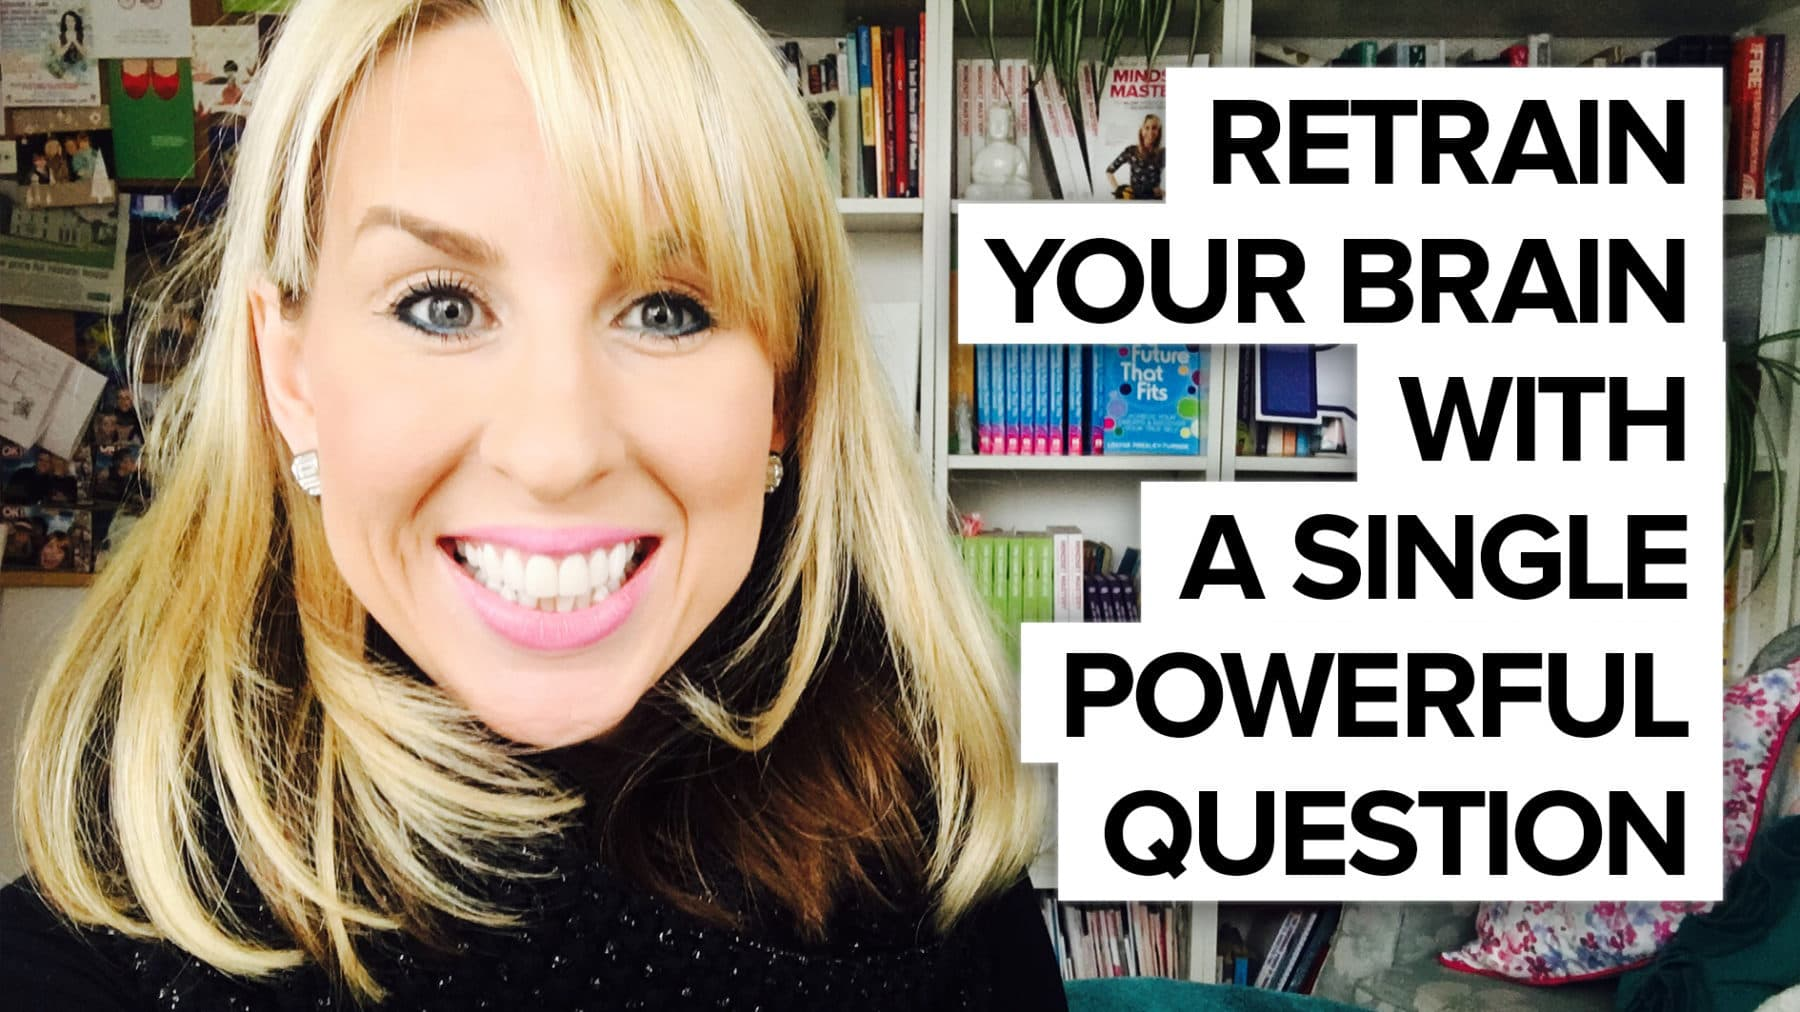 Retrain your brain with a single question!